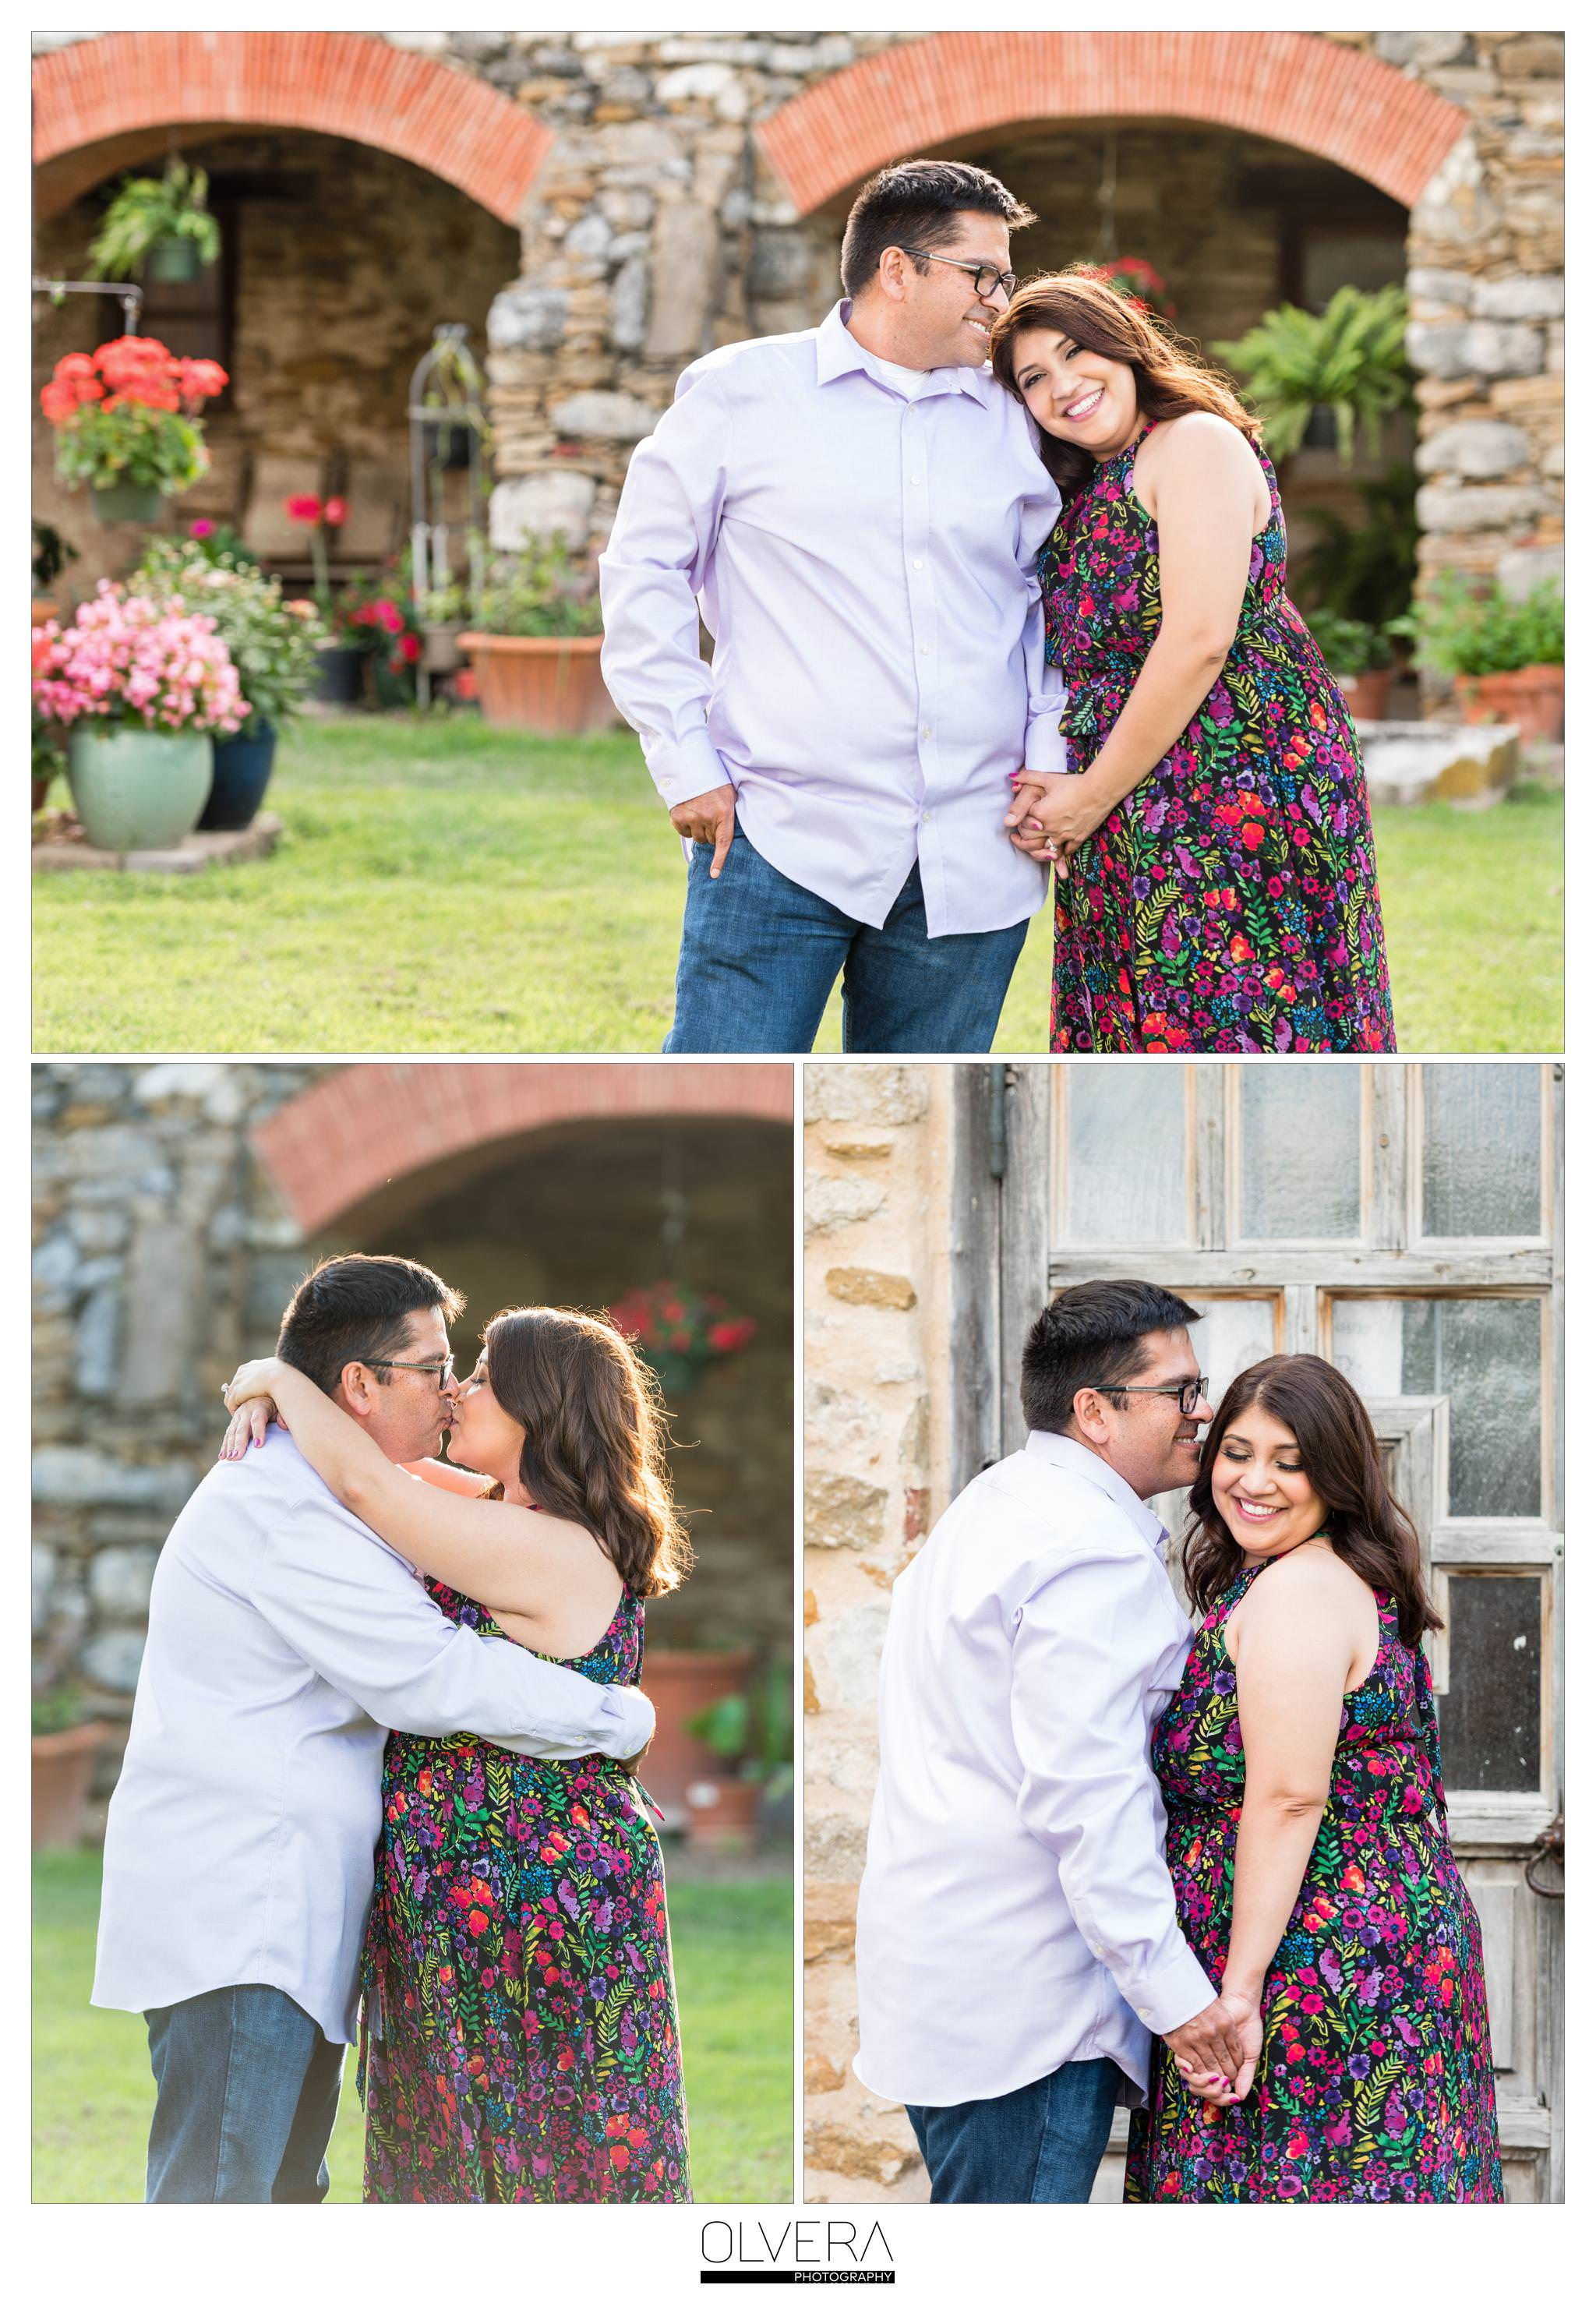 Mission-Espada-Engagement-photos- san antonio wedding photographer 3